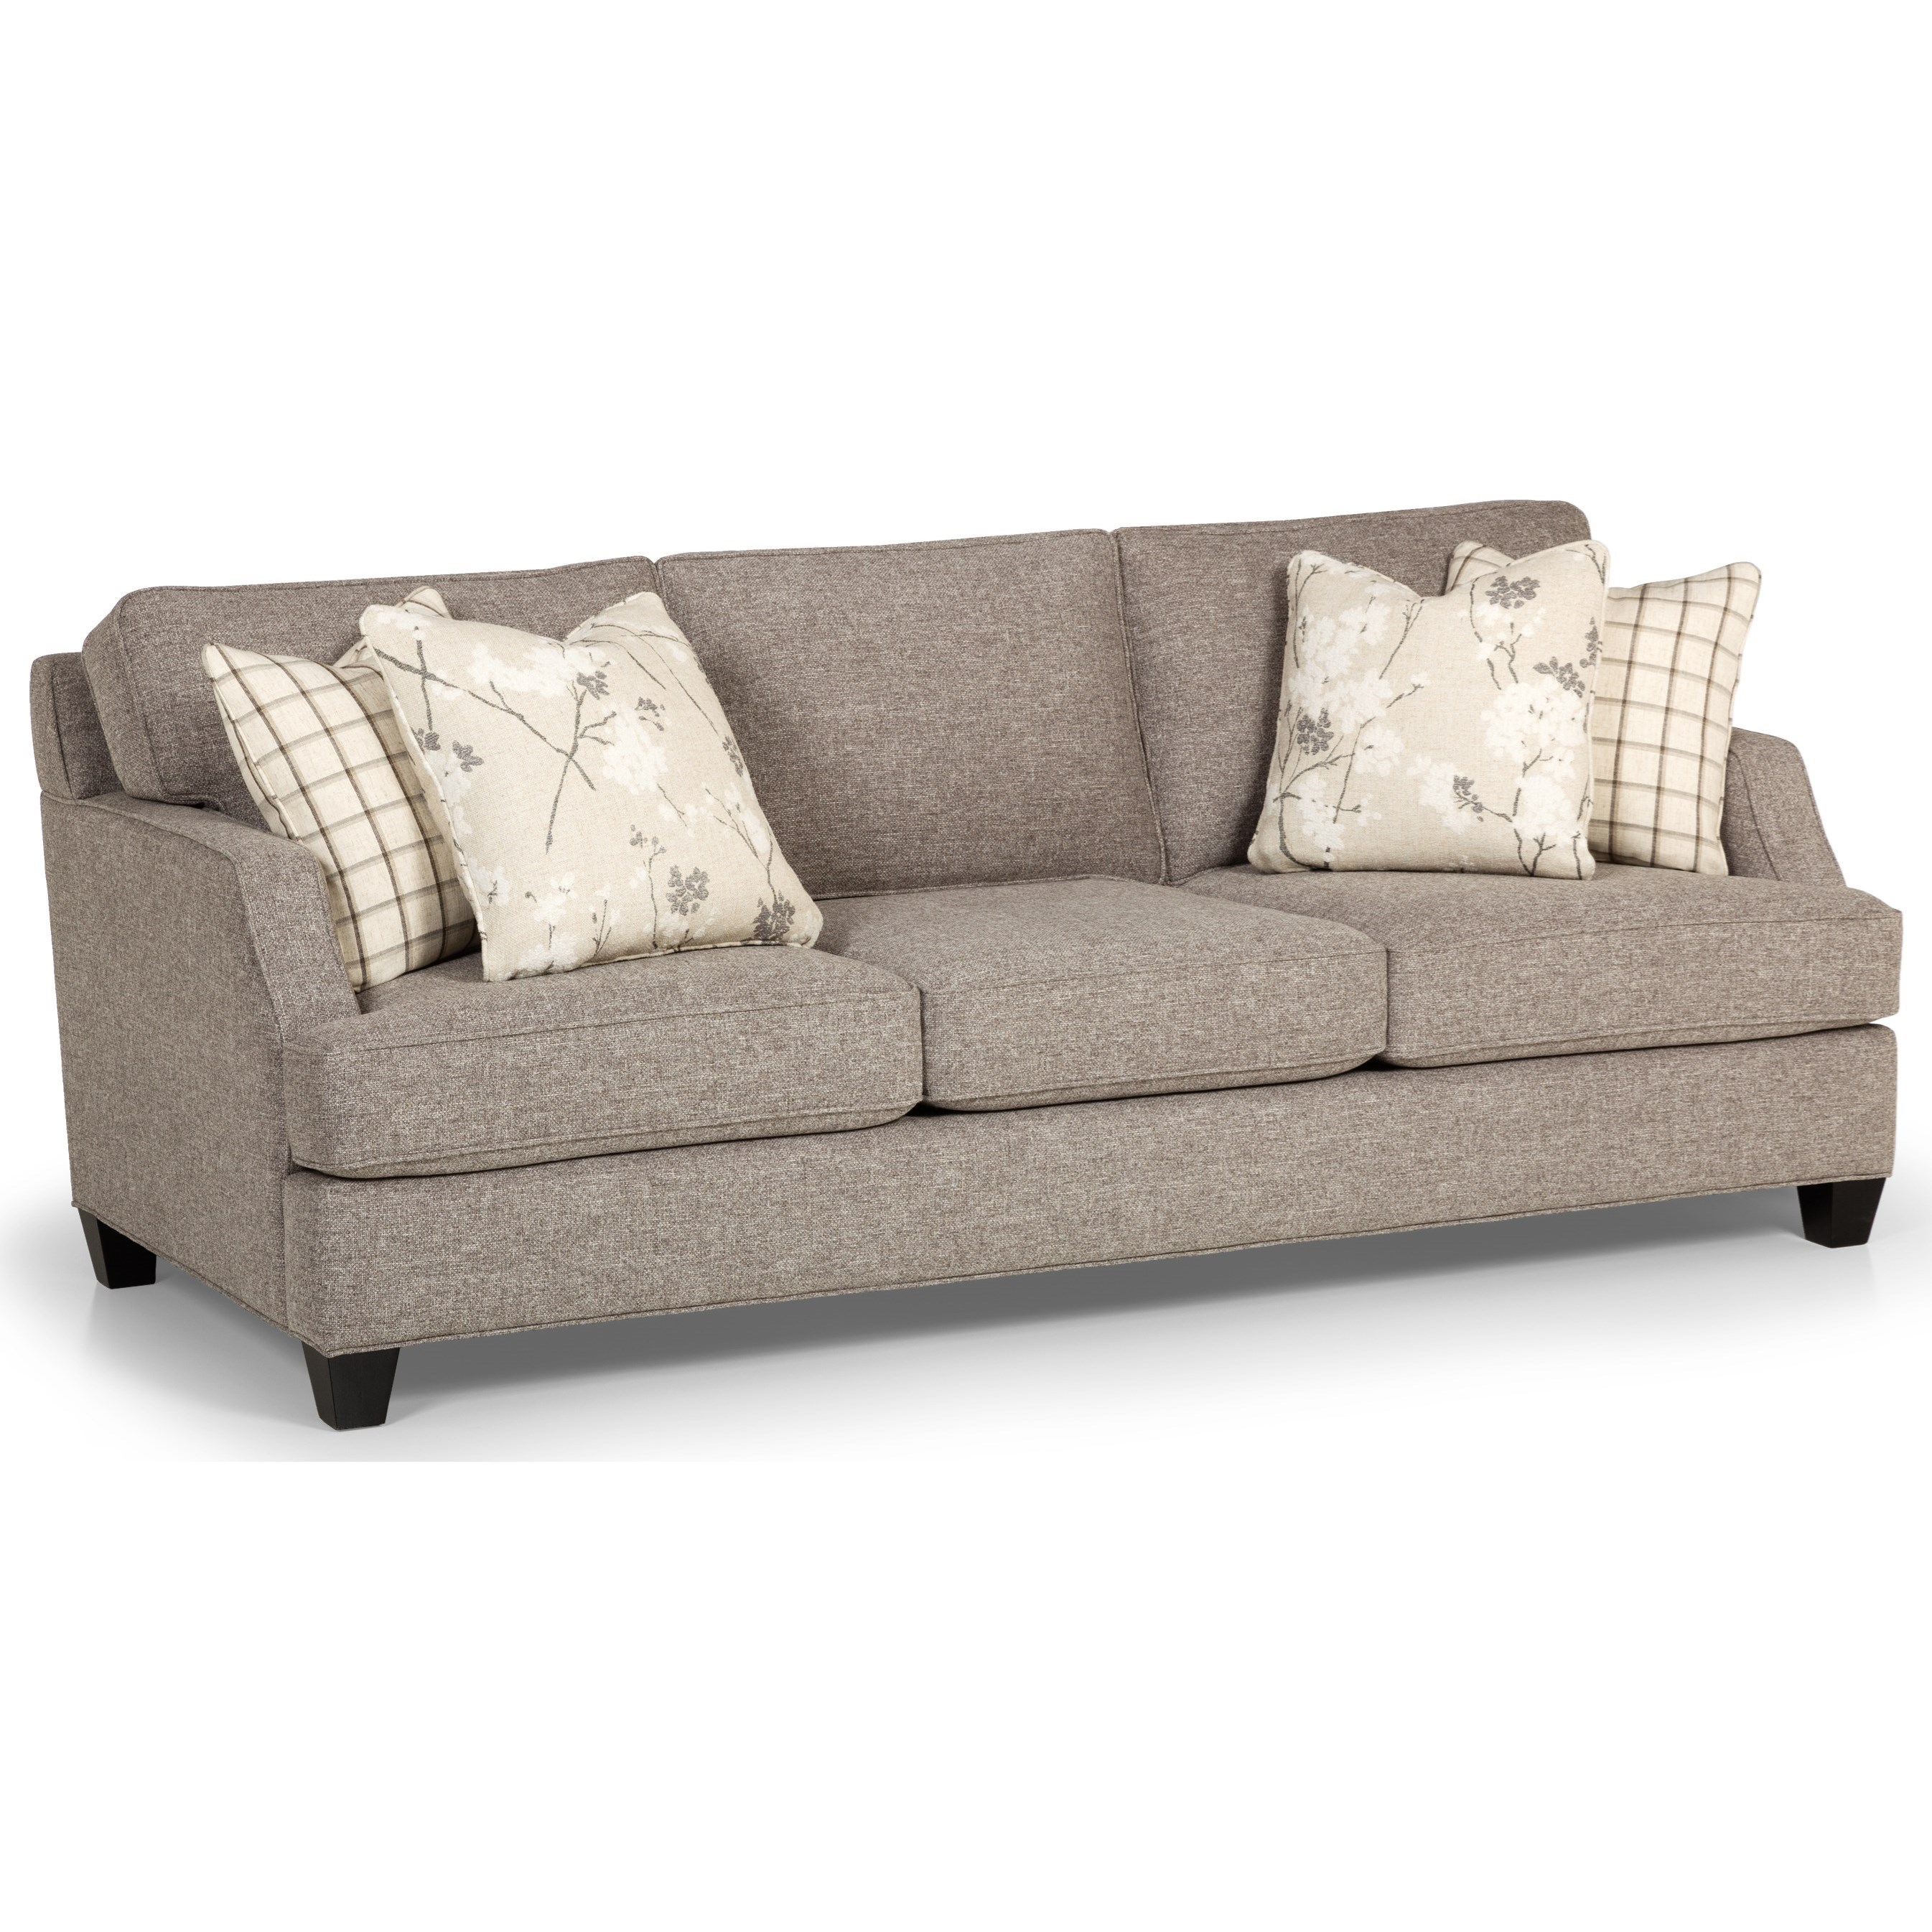 458 Sofa by Stanton at Wilson's Furniture